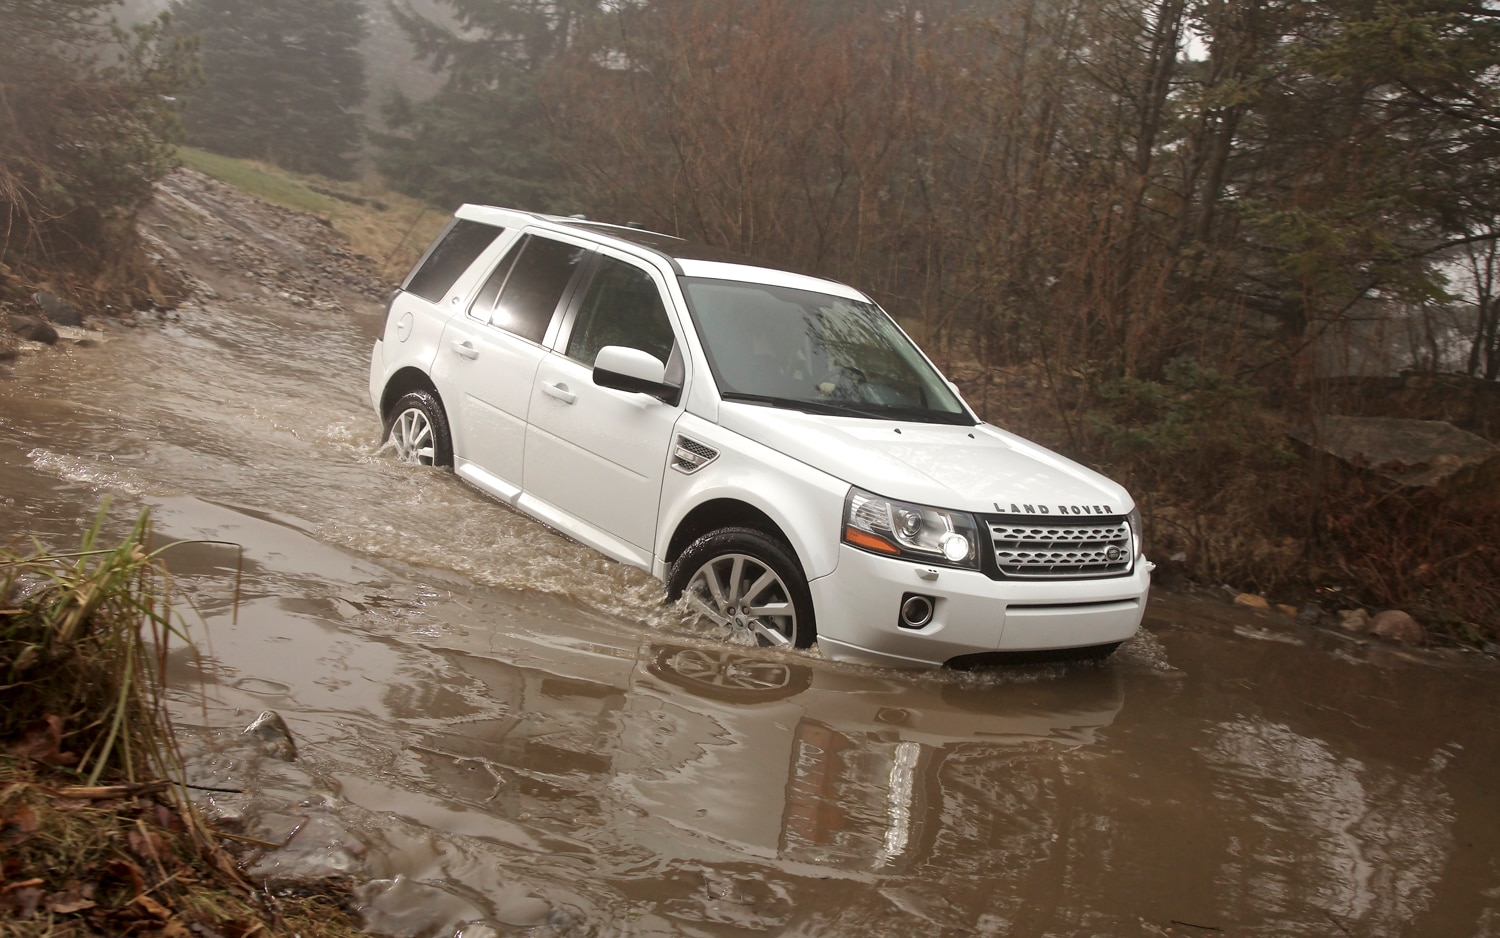 2013 Land Rover LR2 Front Three Quarter In Water